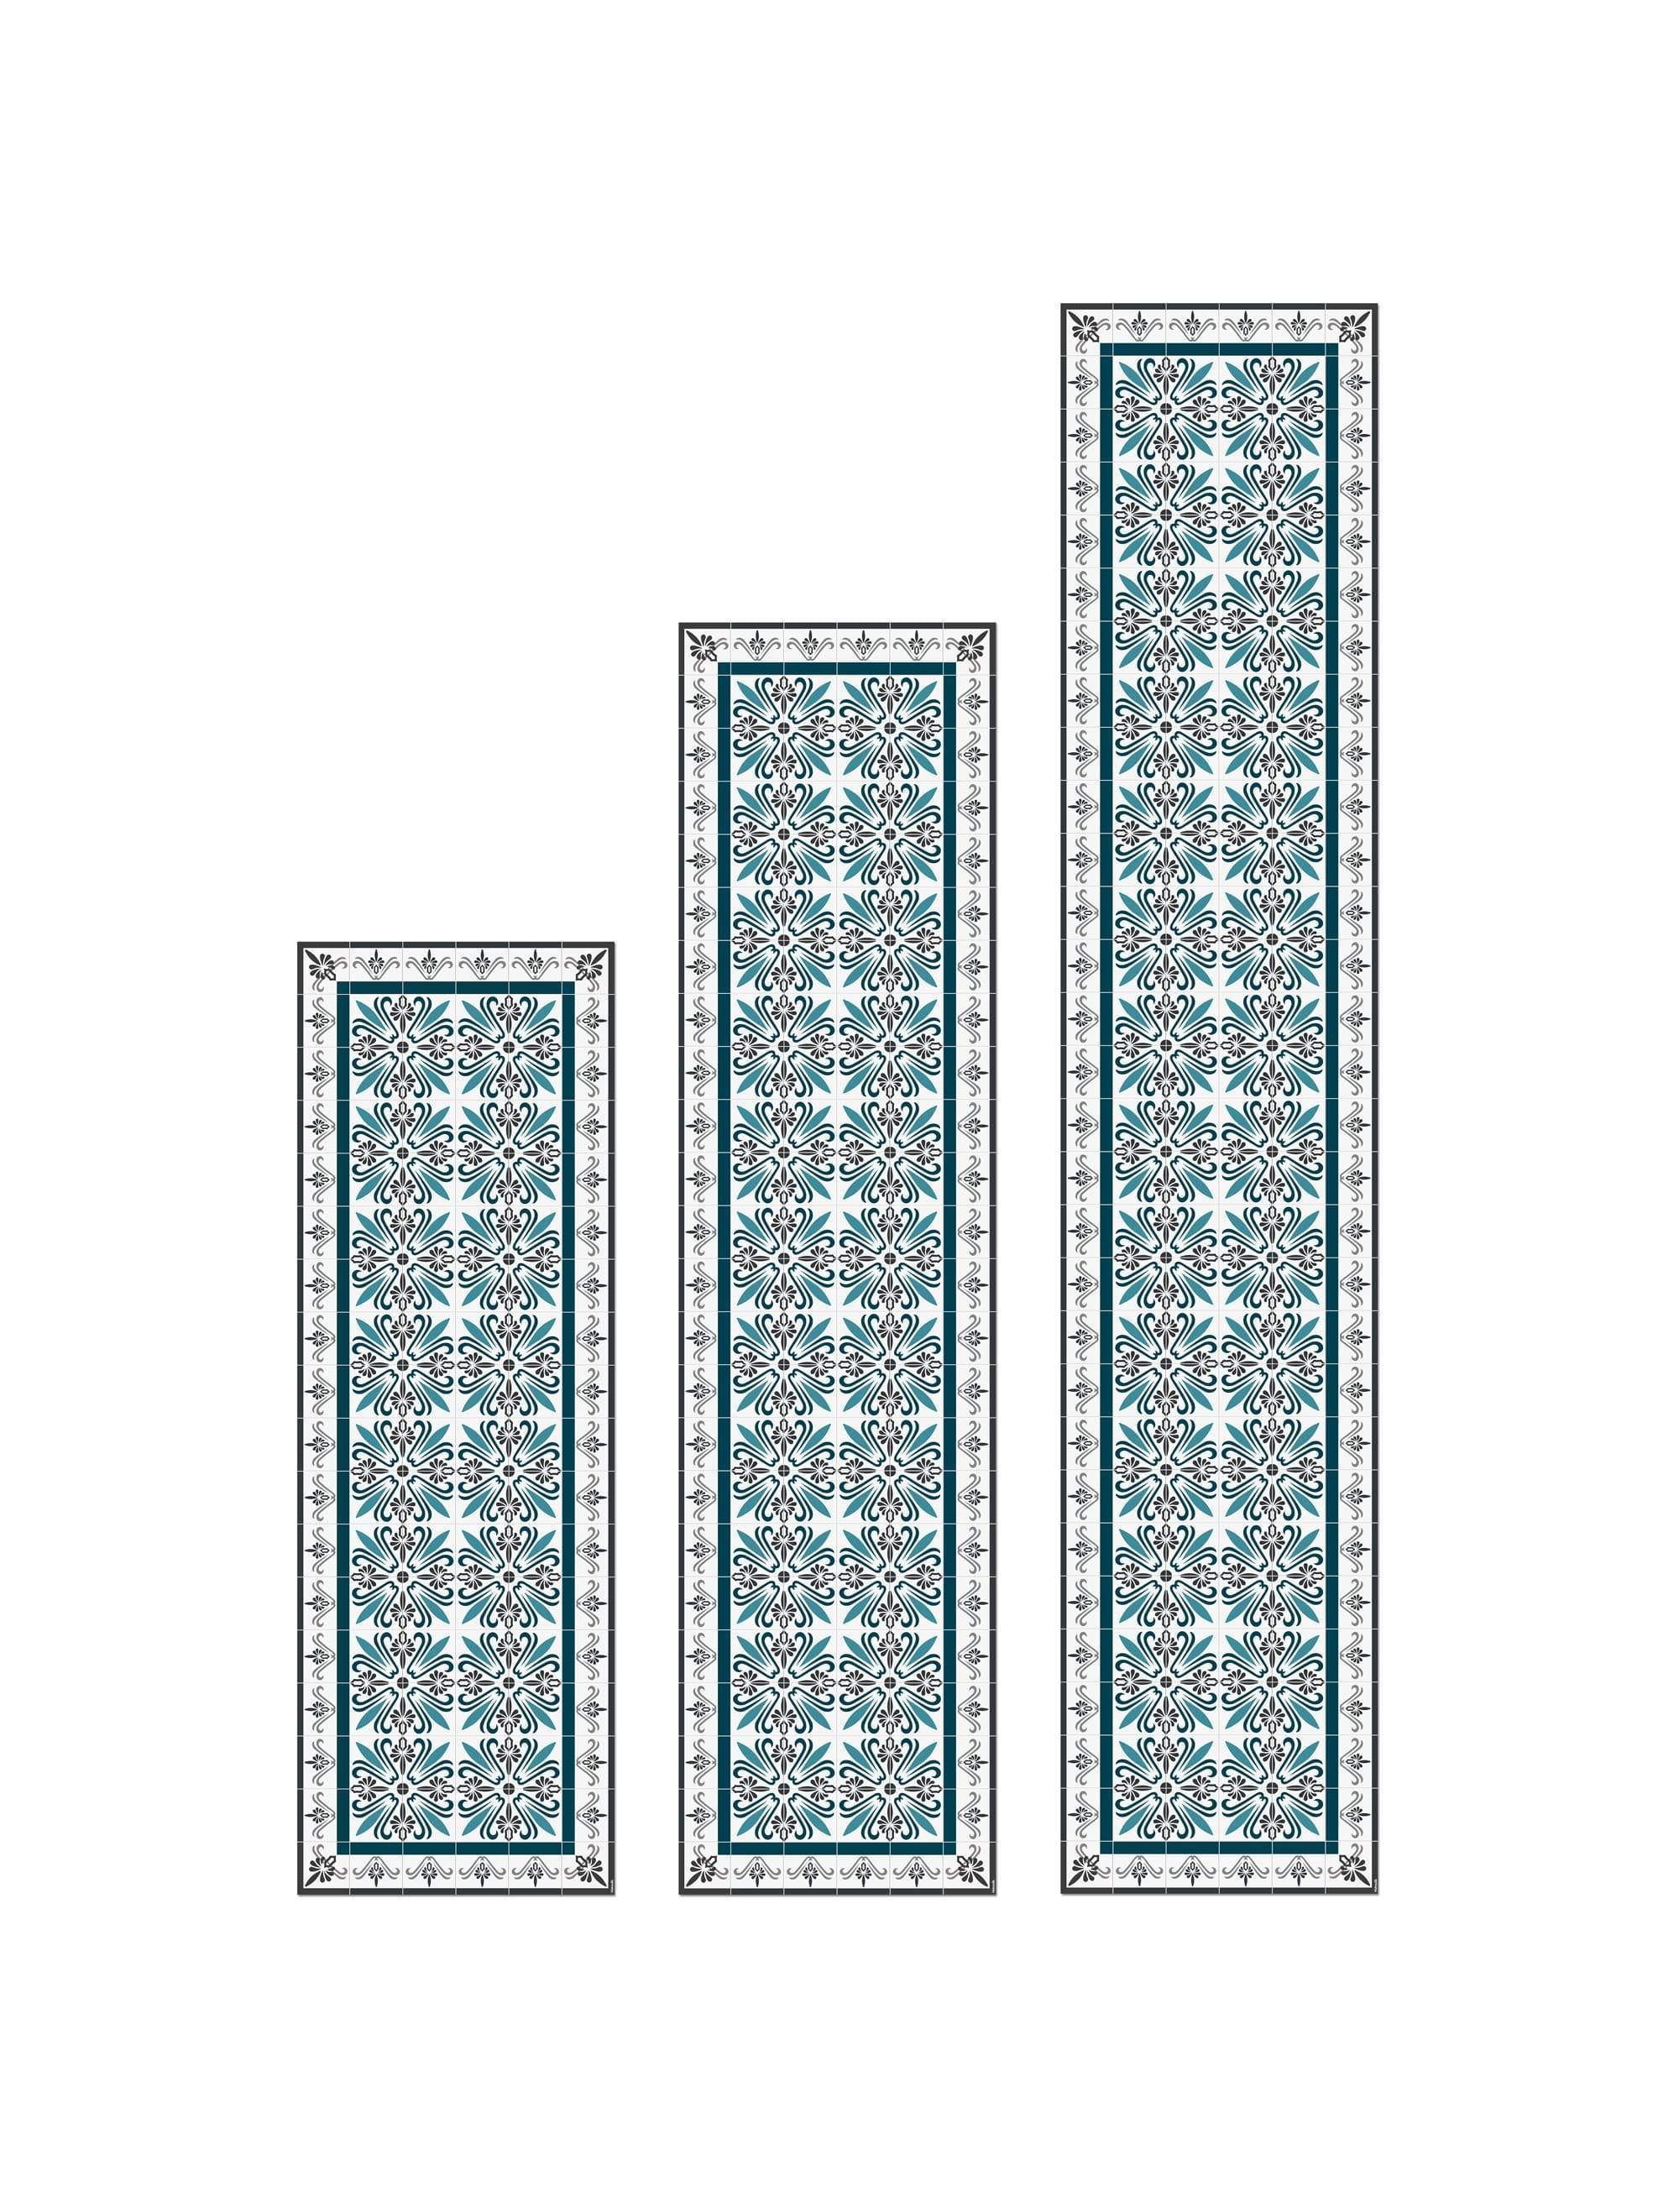 Hidraulik Viladomat Table Runner Sizes